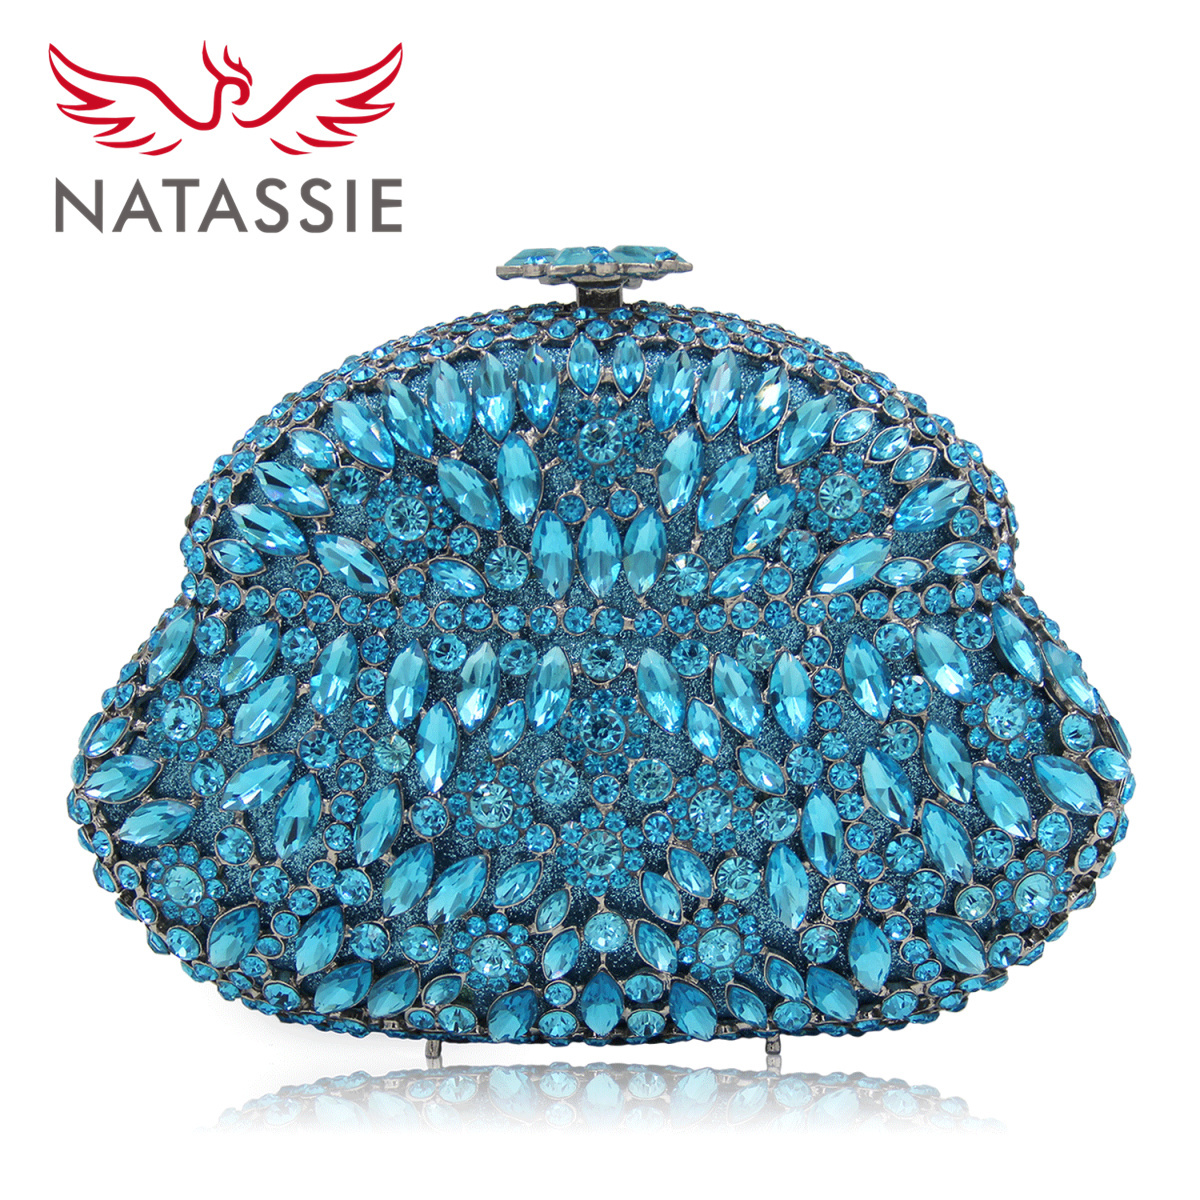 Natassie New Ladies Deluxe Designer Crystal Small Evening Bags Women Wedding Bags Party Purse Day Clutches Chain Blue Diamond женские блузки и рубашки brand new blusas roupas femininas 2015 fo ru5 white black s m l xl